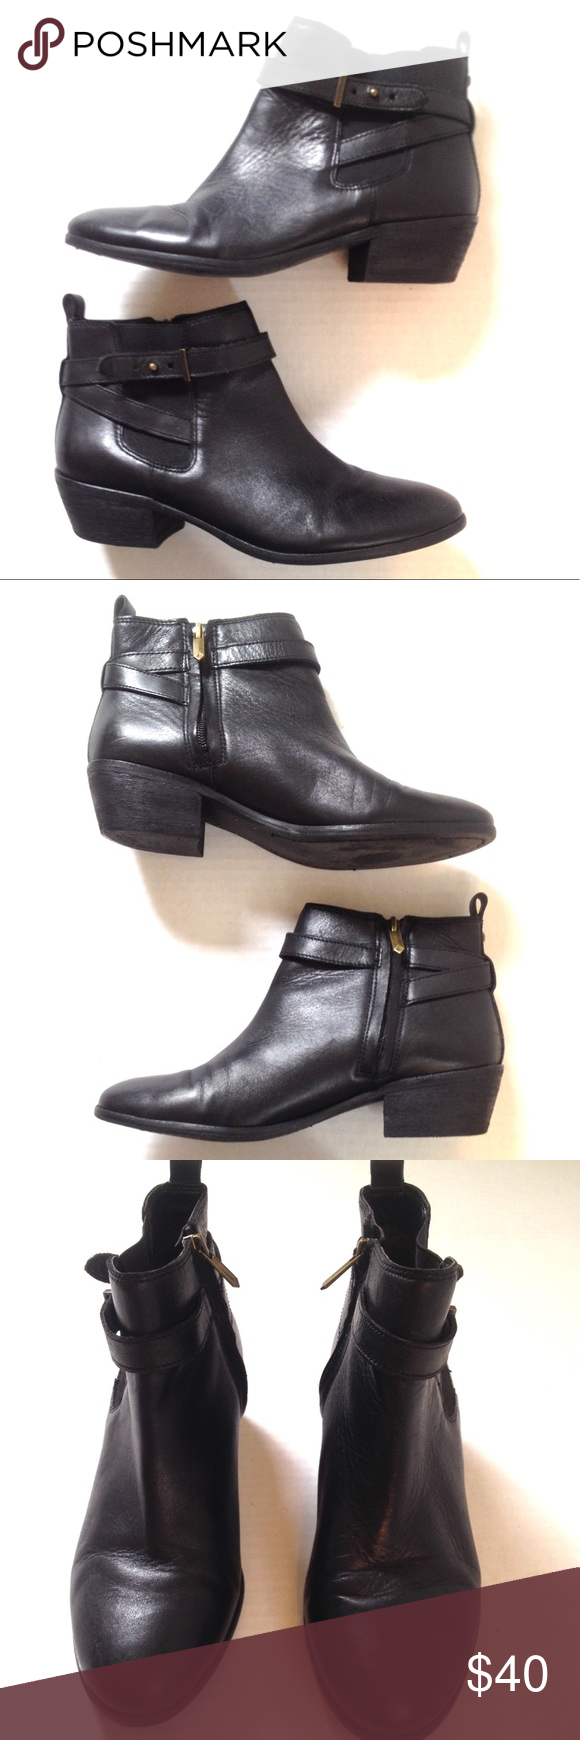 23e82c63360c Sam Edelman Pacific Wraparound black ankle booties These genuine black leather  ankle boots from Sam Edelman